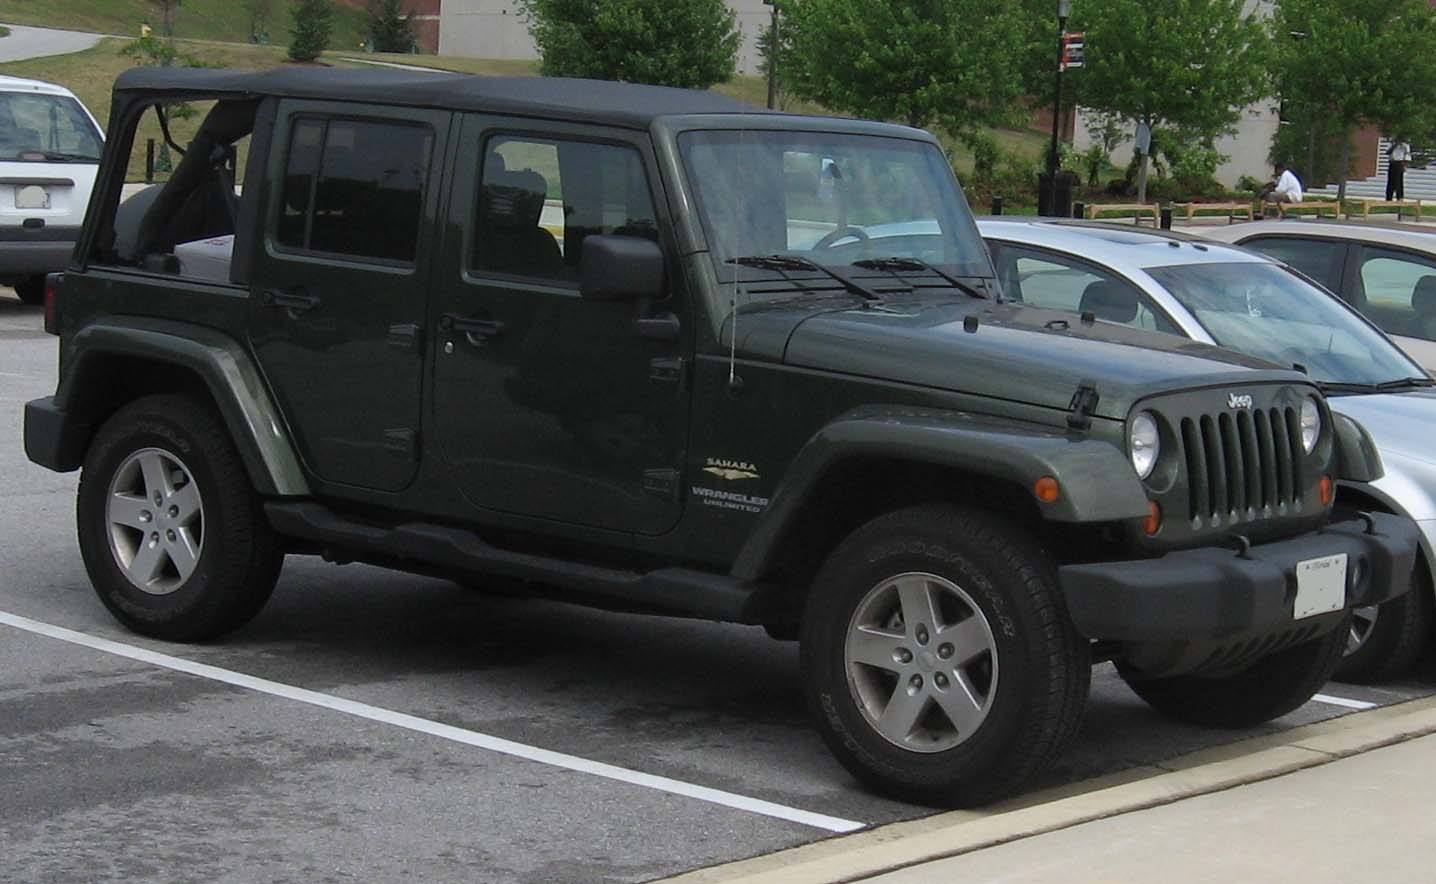 file:2007-jeep-wrangler-unlimited-sahara - wikimedia commons